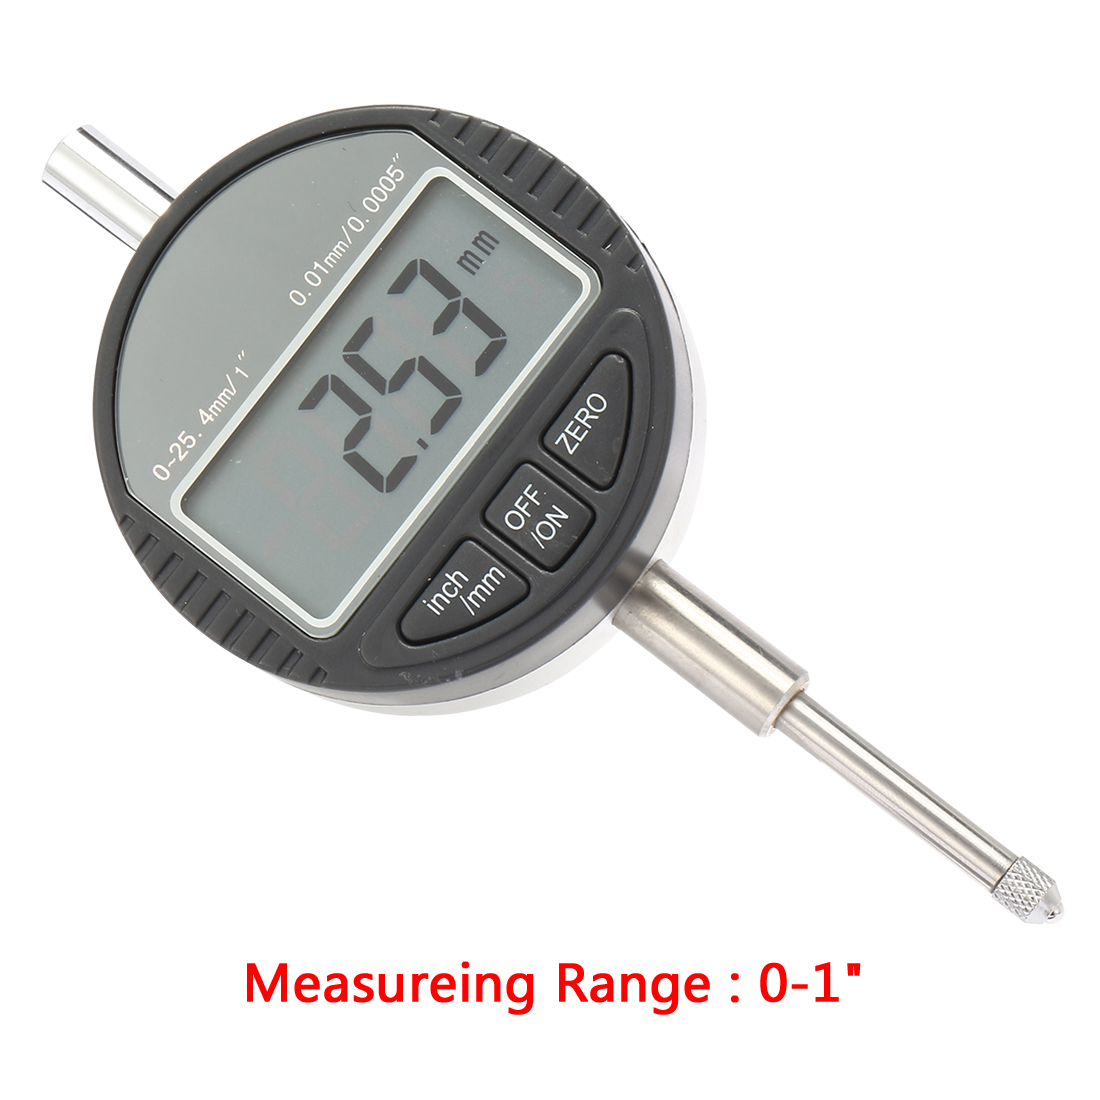 Electronic Digital Indicator Gage Gauge Inch/Metric Conversion 0-1 Inch/25.4 mm with Back Lug